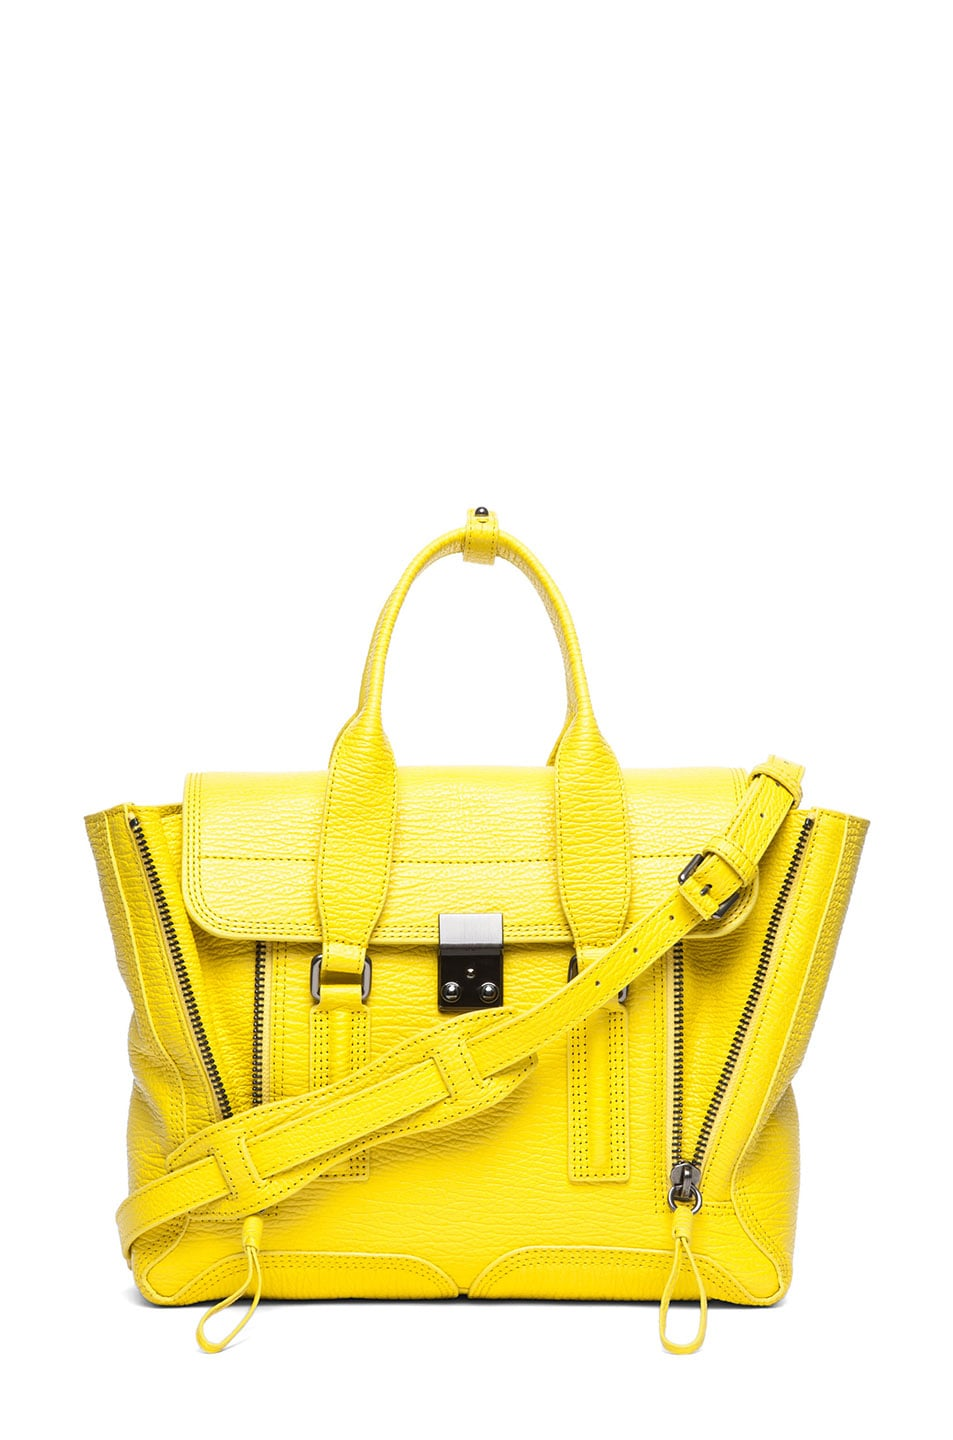 Image 1 of 3.1 phillip lim Medium Pashli Shark Embossed Satchel in Electric Yellow